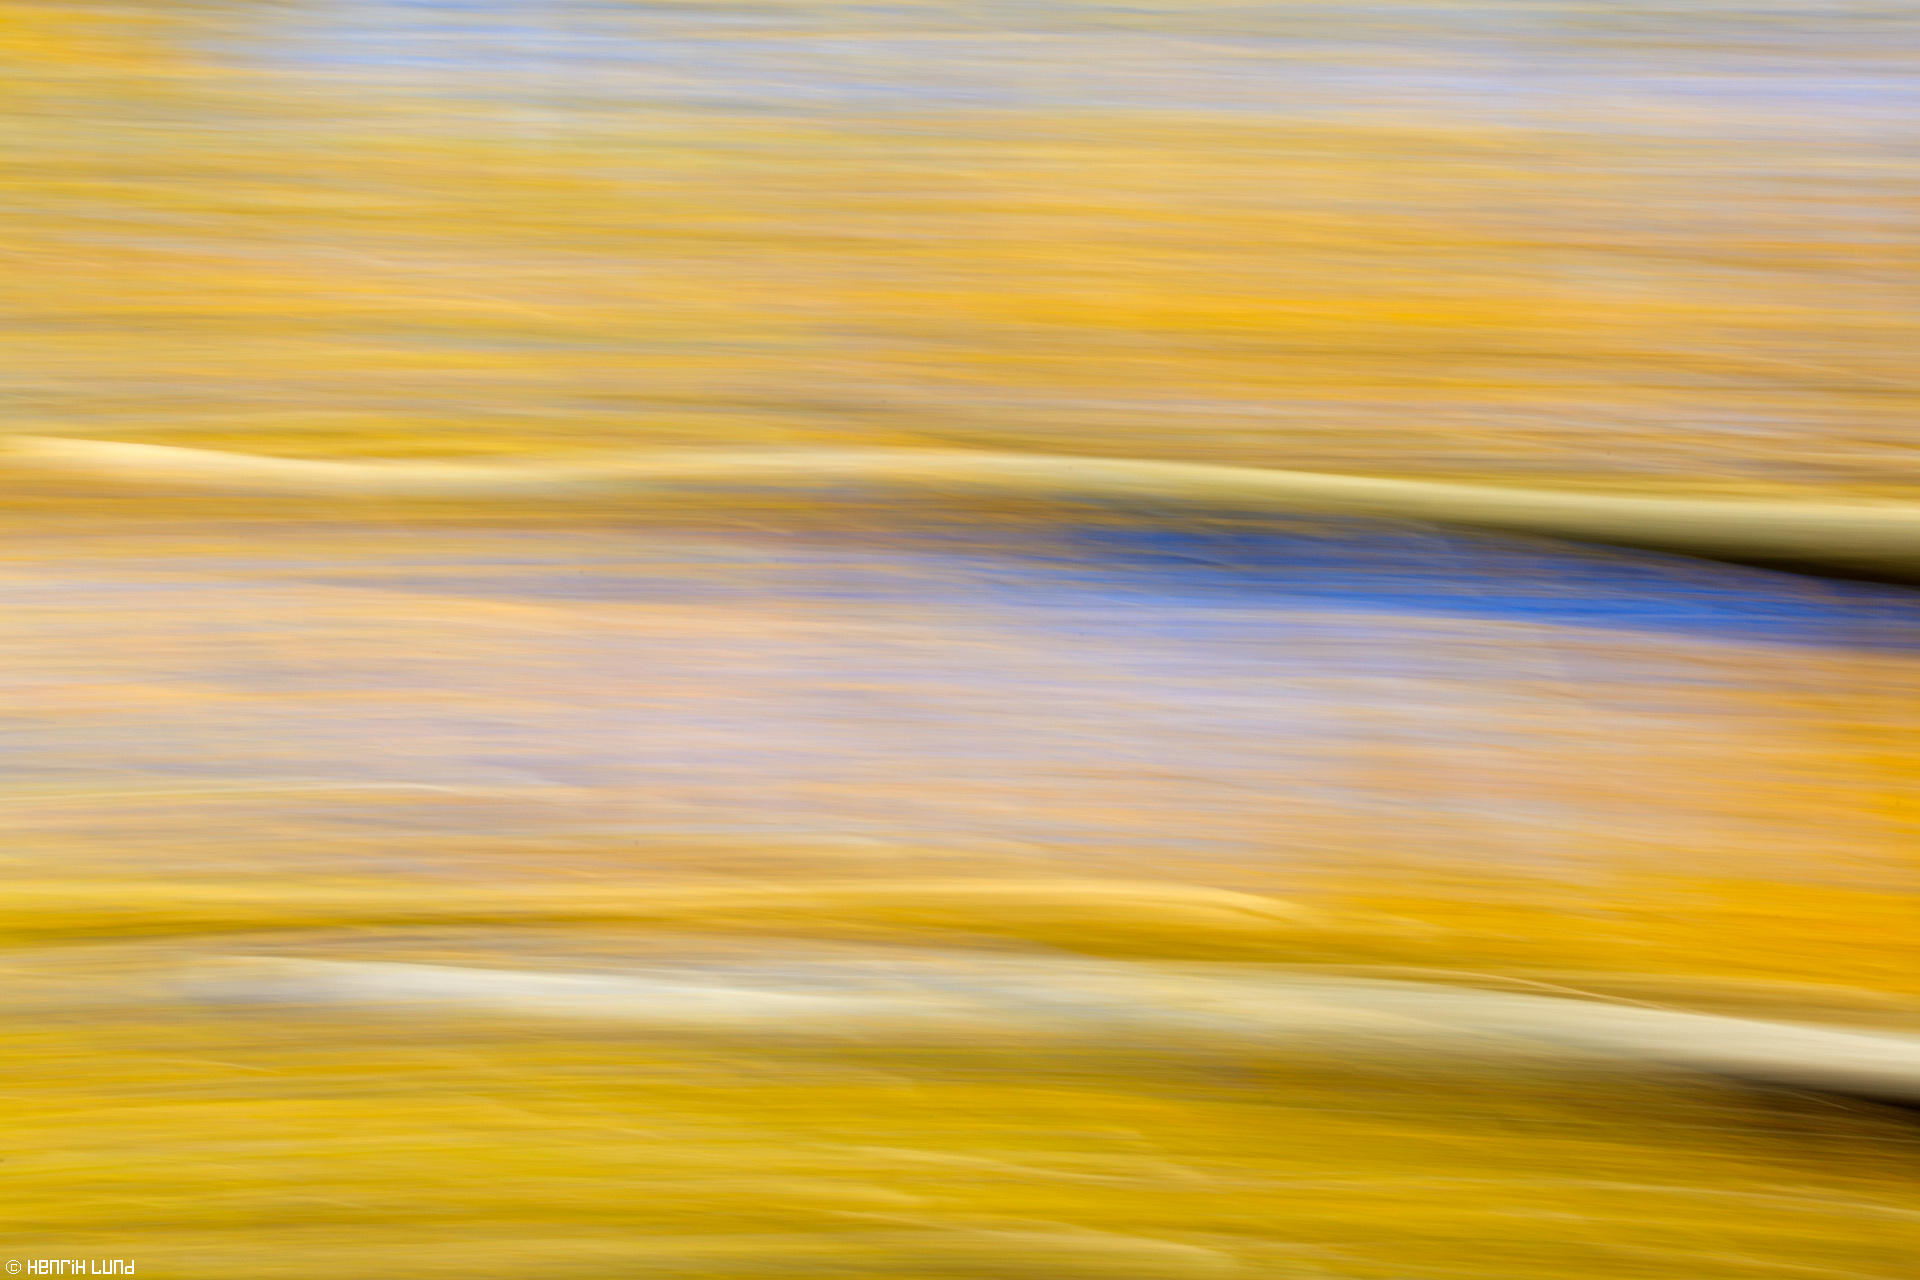 Panning technique used to catch the bright autumn colors. Lappträsk, Finland, October, 2015.